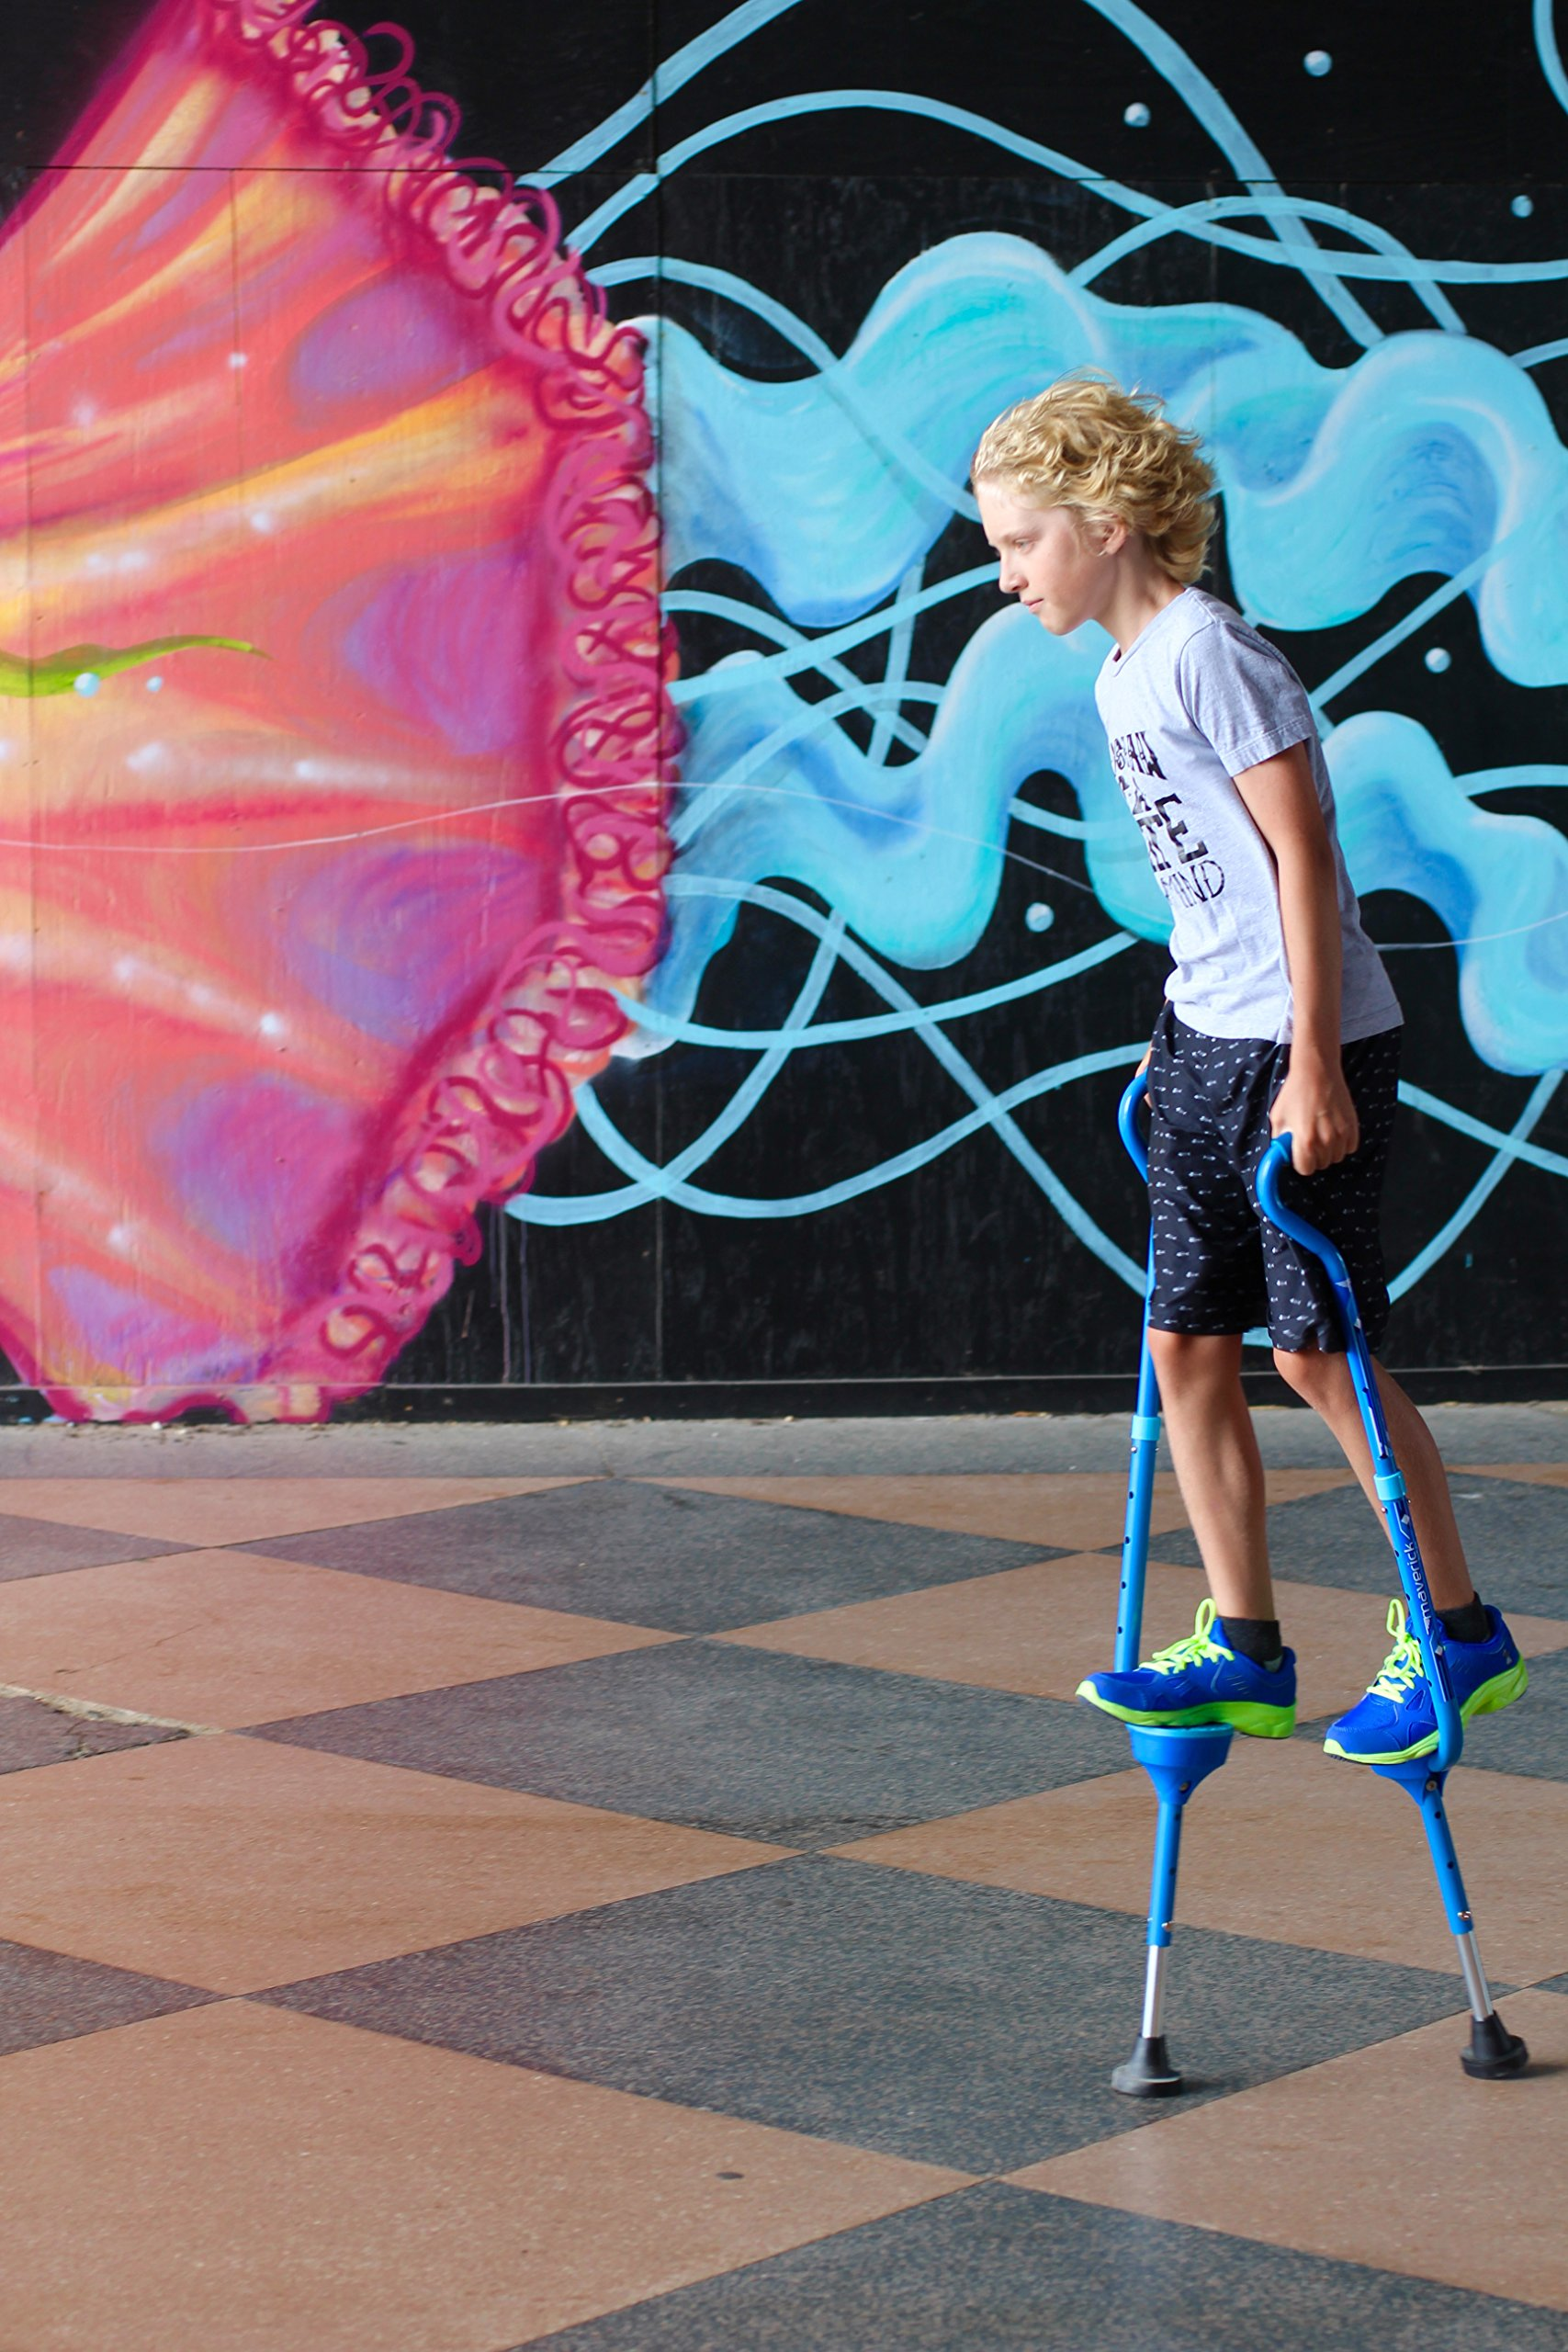 Flybar Maverick Walking Stilts for Kids Ages 5 +, Weights Up to 190 Lbs - Adjustable Foam Handles with Wide Stance Foot Pegs - Fun Outdoor Toys for Girls & Boys by Flybar (Image #5)